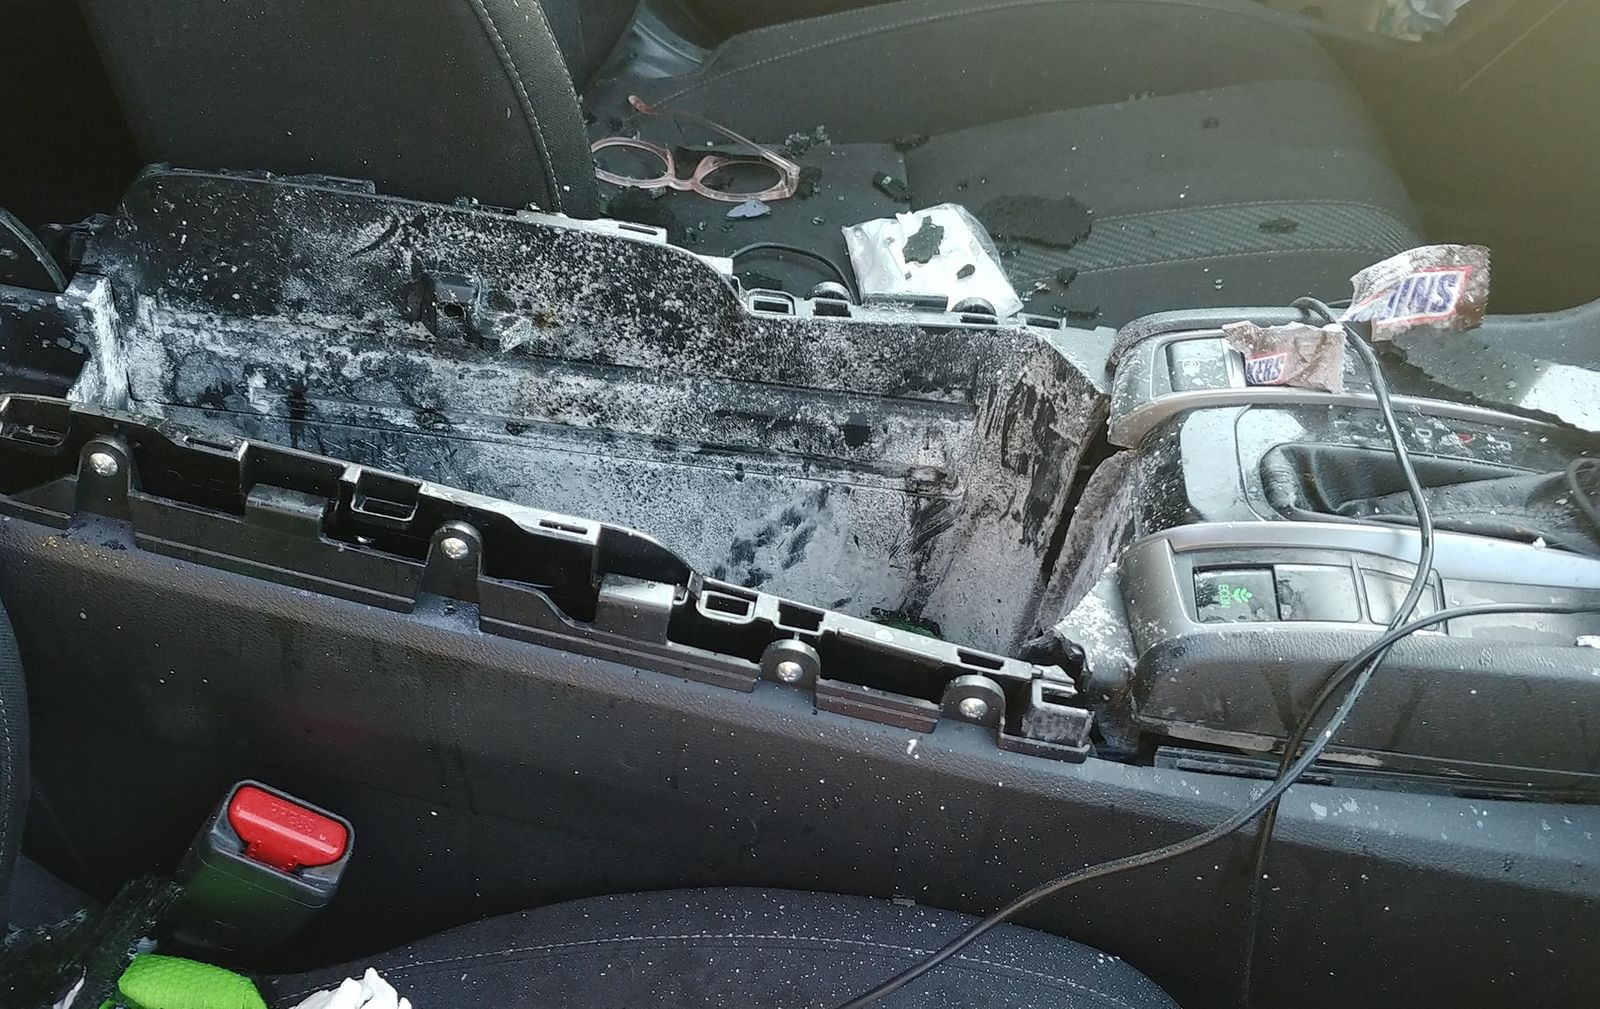 The can blew the console cover off of its hinges, shot through the sunroof, and went high enough in the air that it landed about 50 feet away. (Christine Bader Debrecht)